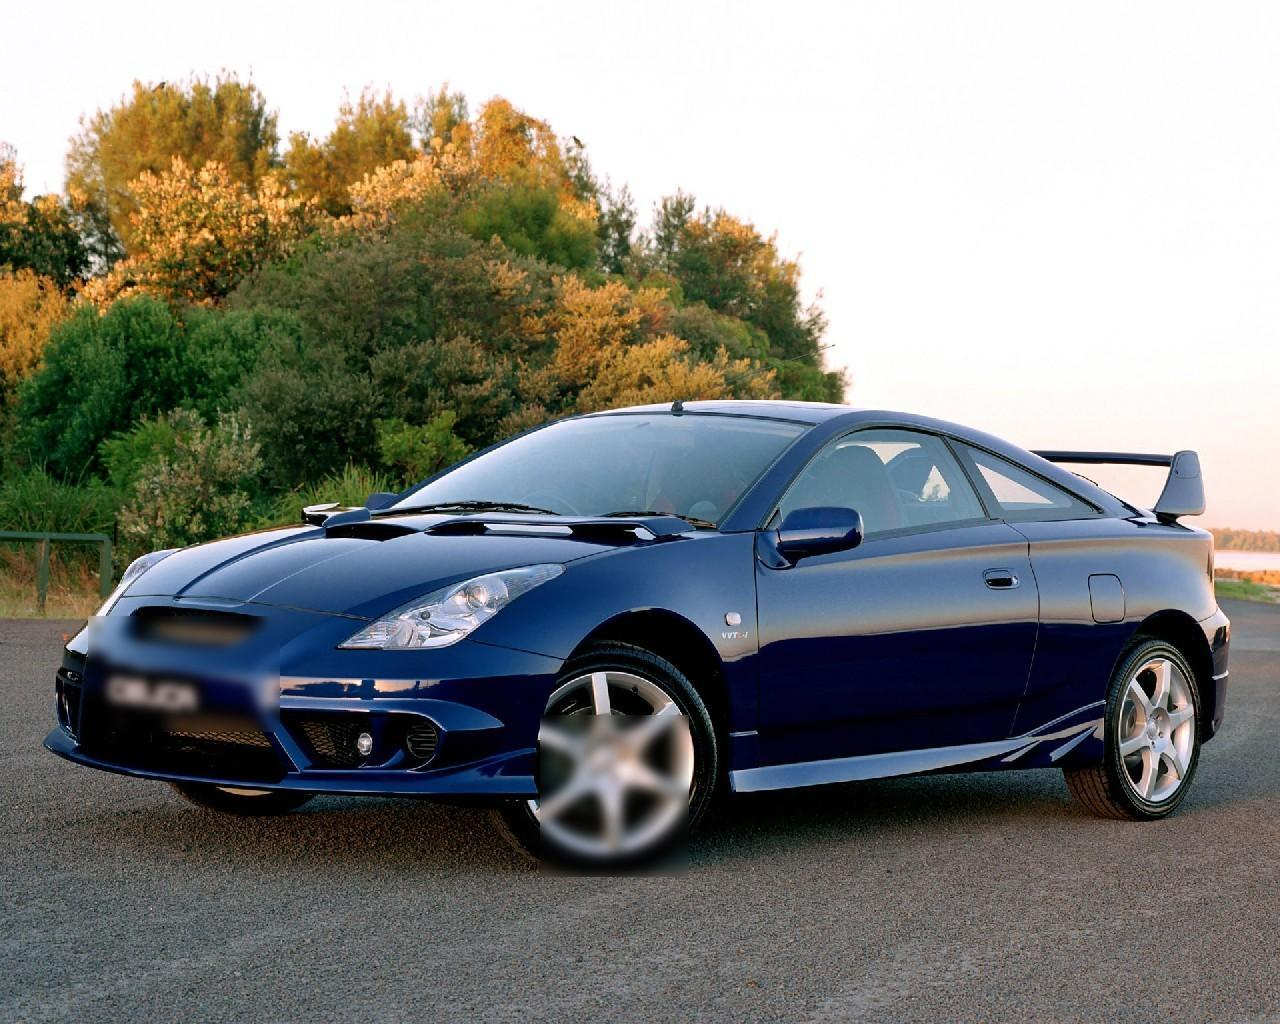 Toyota Celica 2017 >> New Wallpapers Toyota Celica 2017 For Android Apk Download